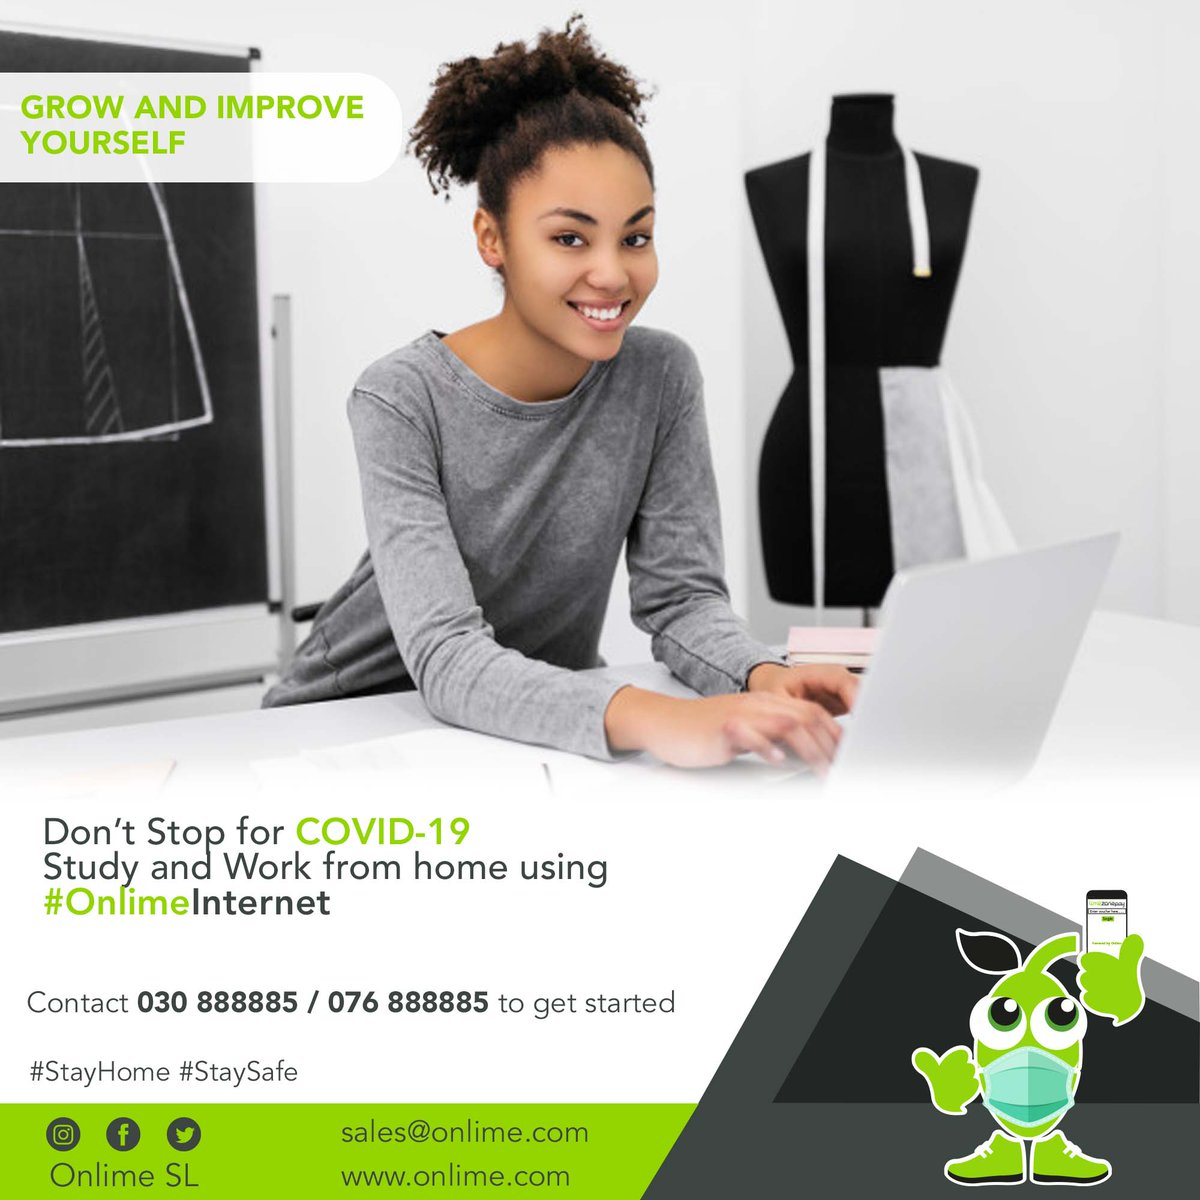 Make working and learning from home more fun with #OnlimeInternet Call 076888885 /030888885 to get started. #SierraLeone #Freetown #SaloneTwitter https://t.co/gzUshIgpmu